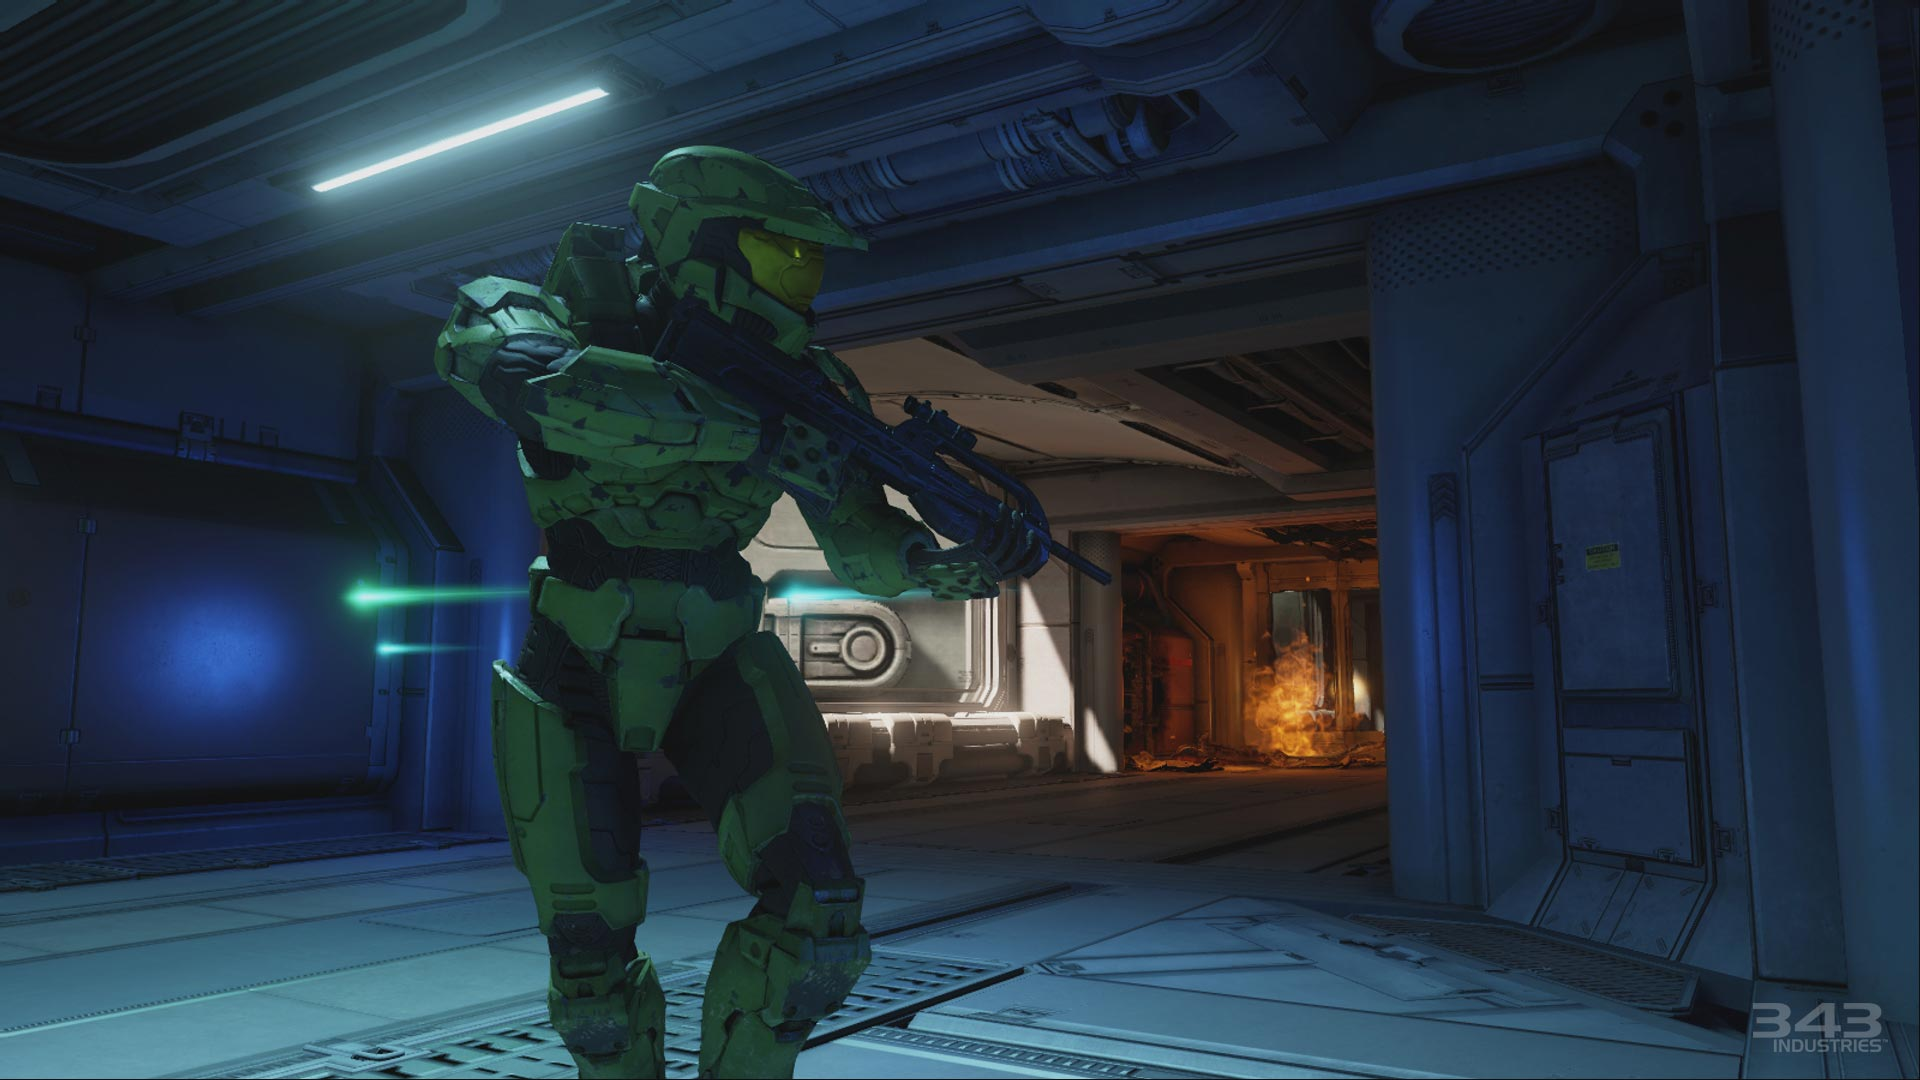 Halo The Master Chief Collection Release Date Details